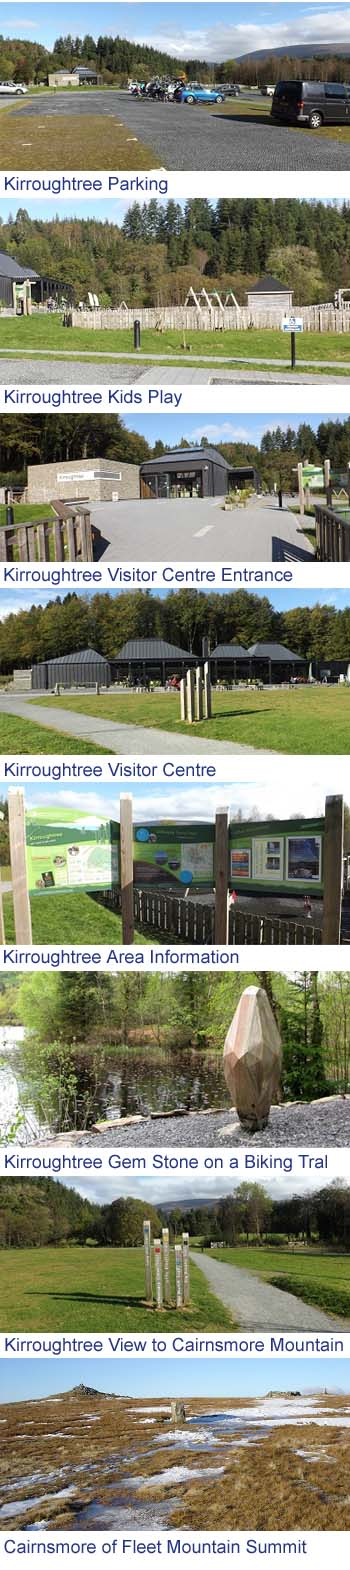 Kirroughtree Images